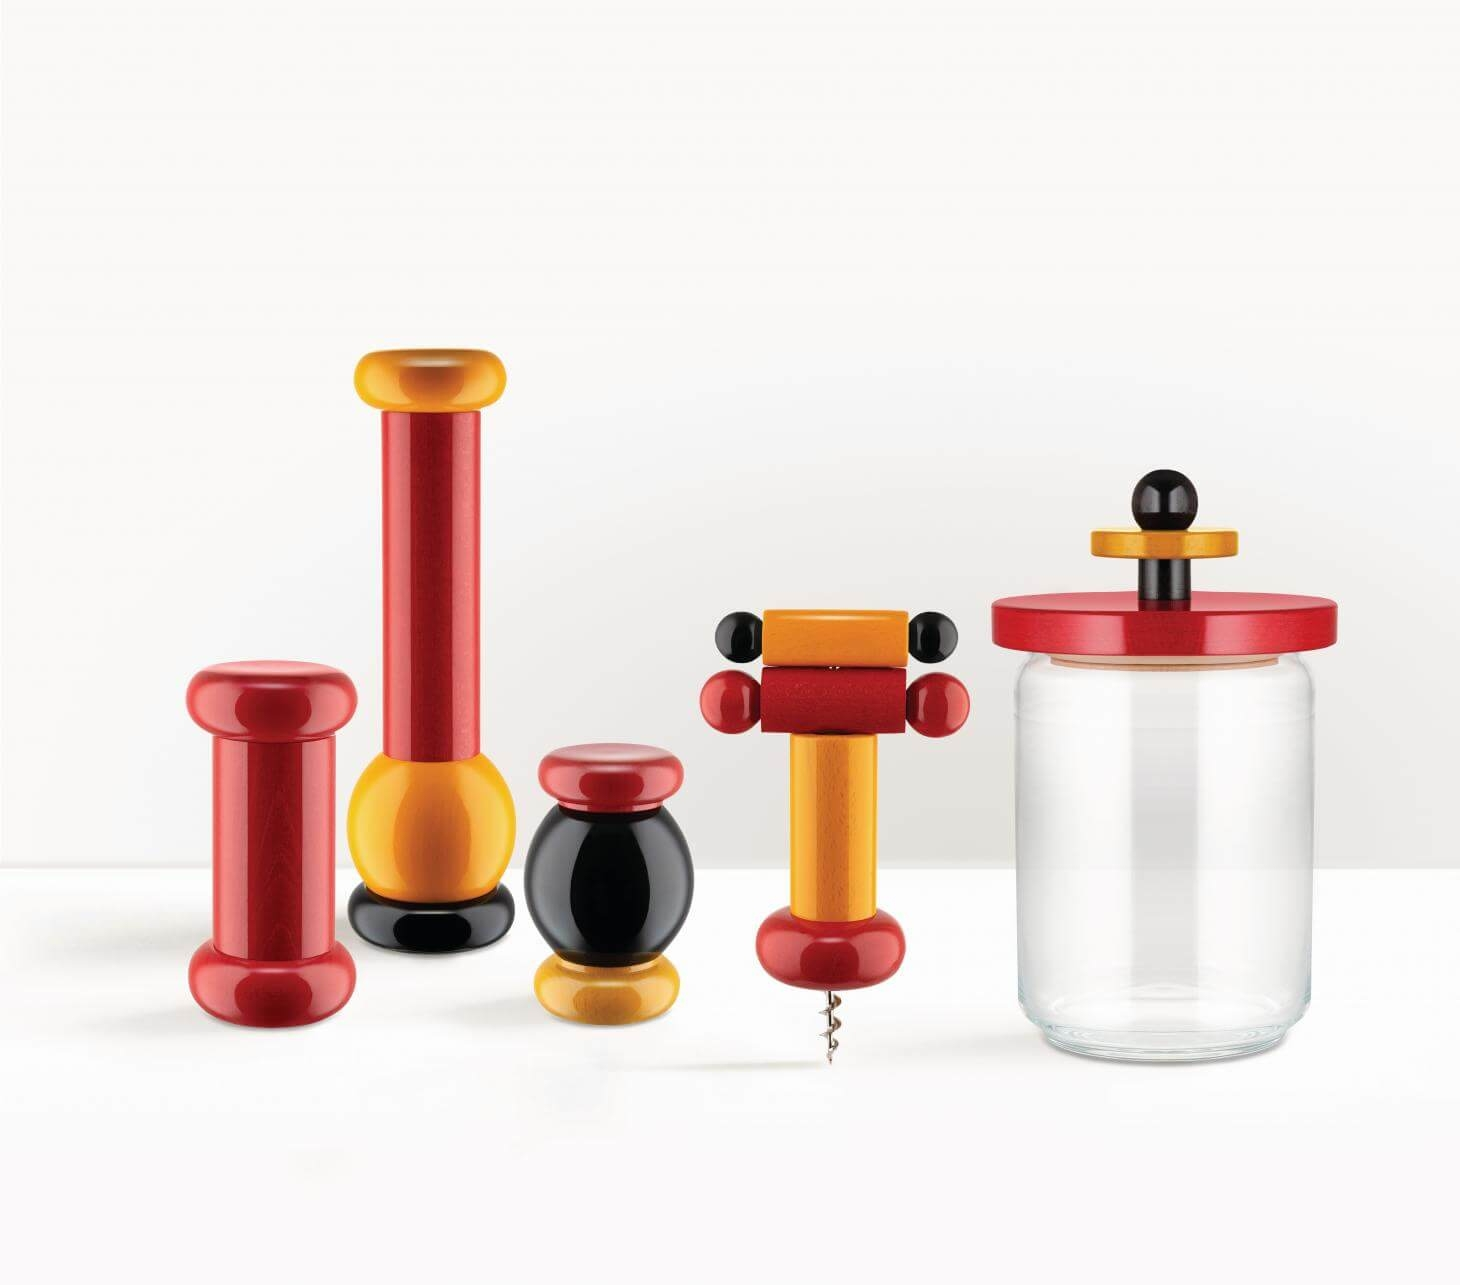 alessi 100 values collection sottsass collection design ettore sottsass groupage red.yellow.black copy